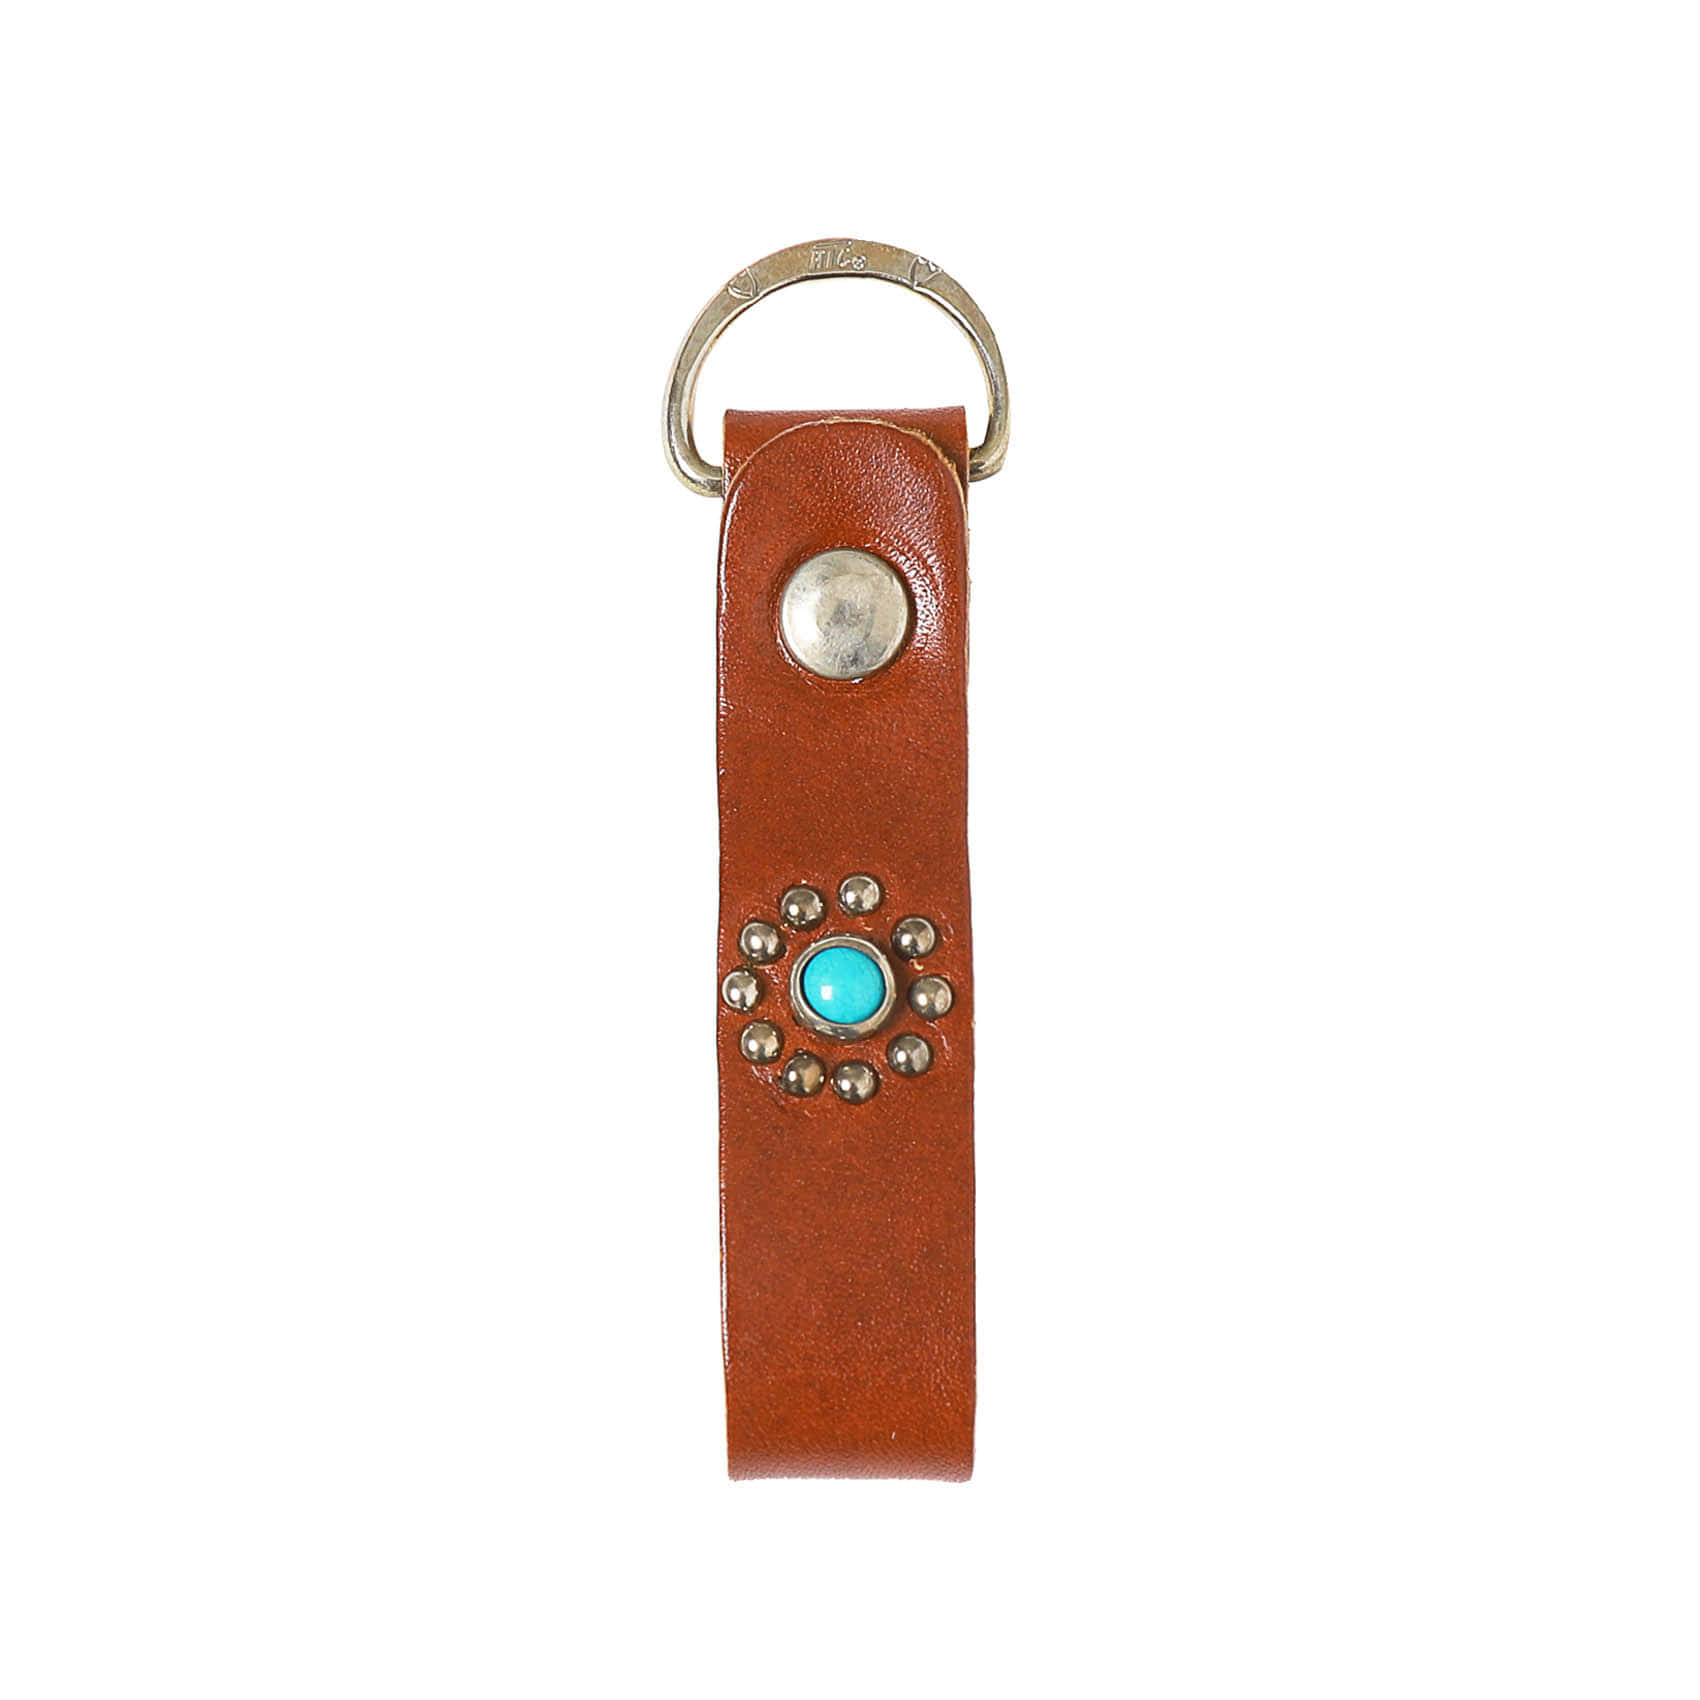 HTC D RING KEY HOLDER - BROWN